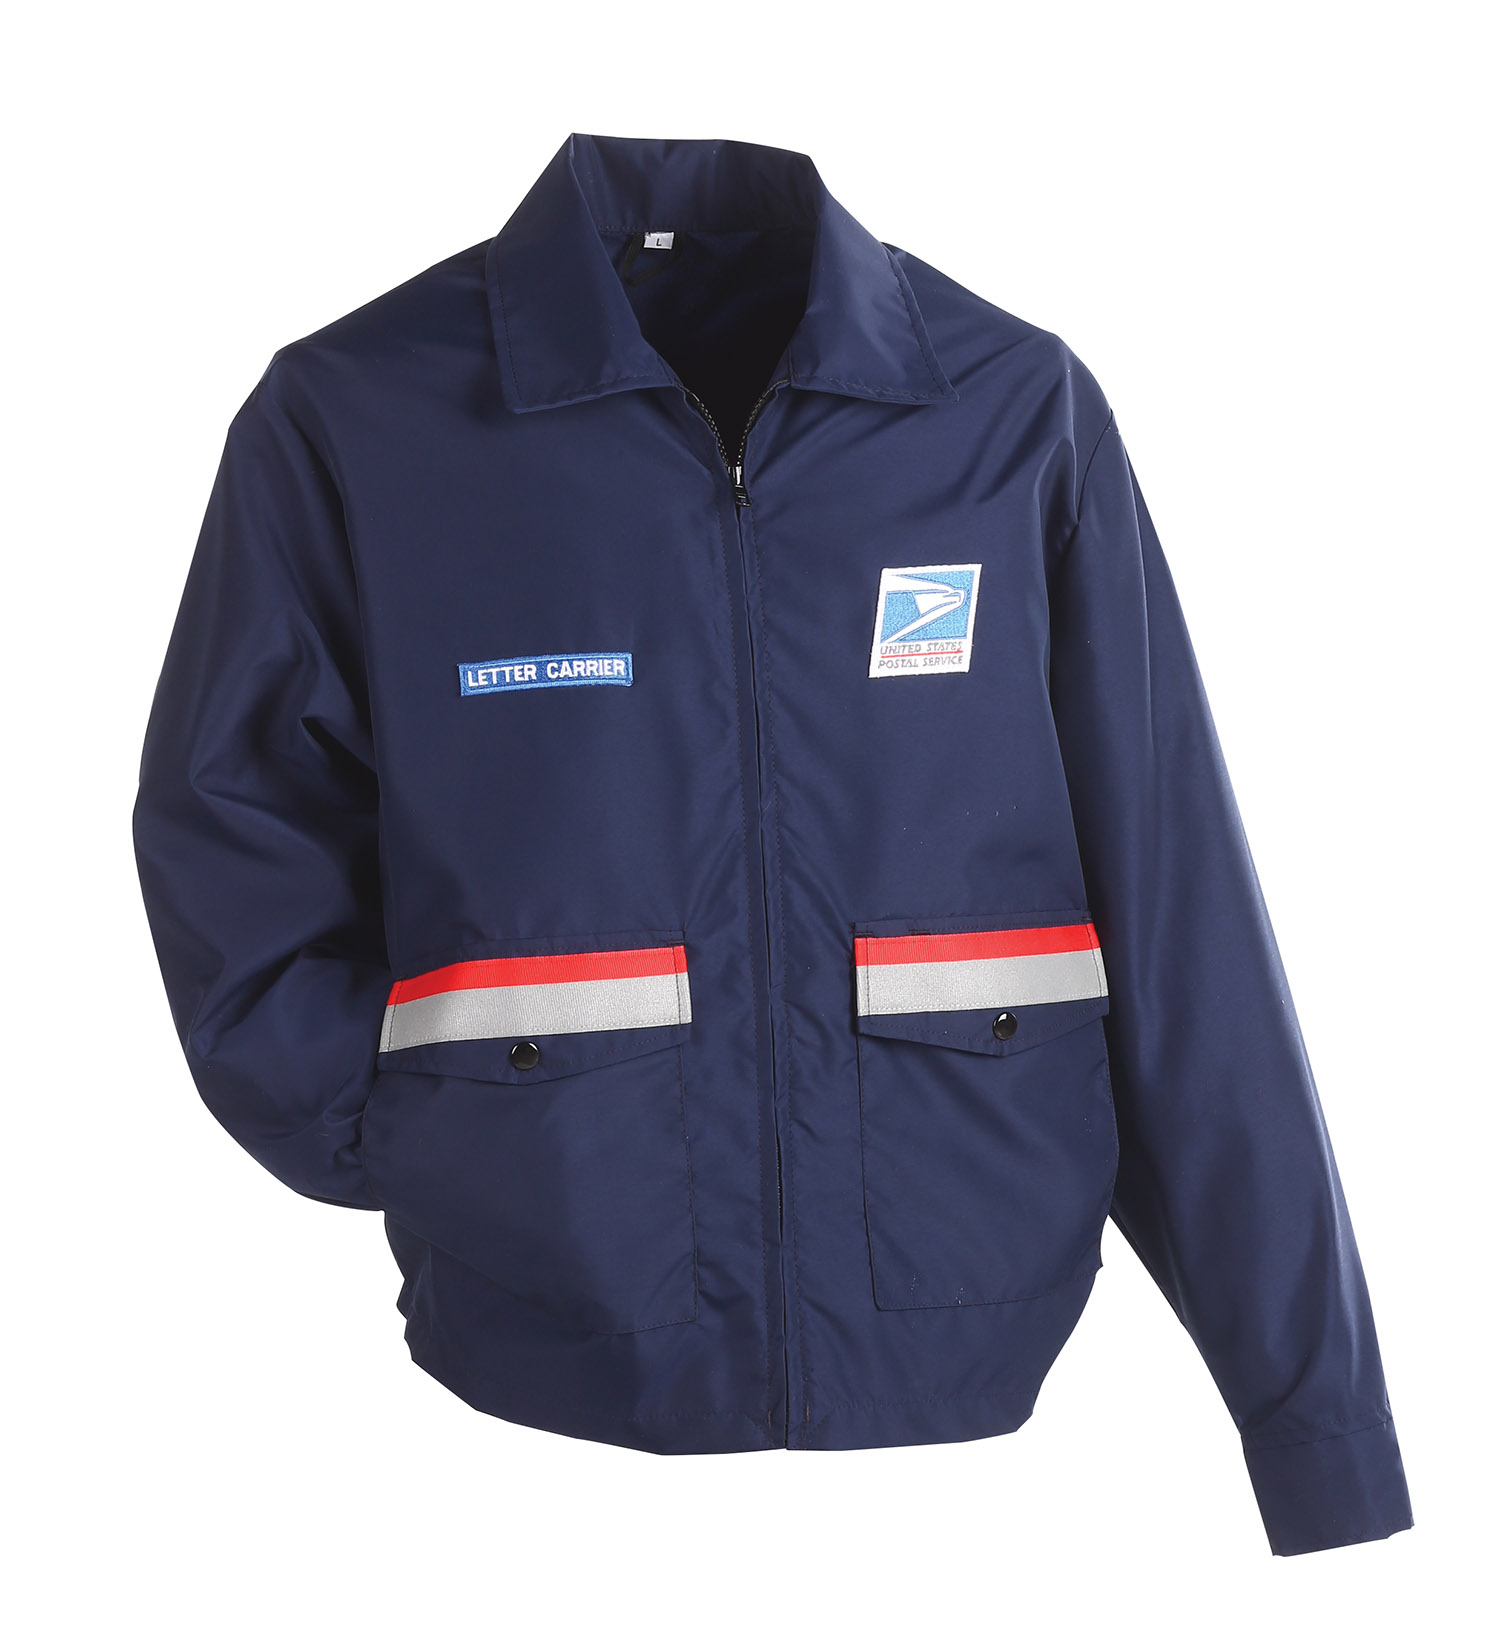 postal uniform windbreaker for men letter carriers and motor vehicle service operators px800